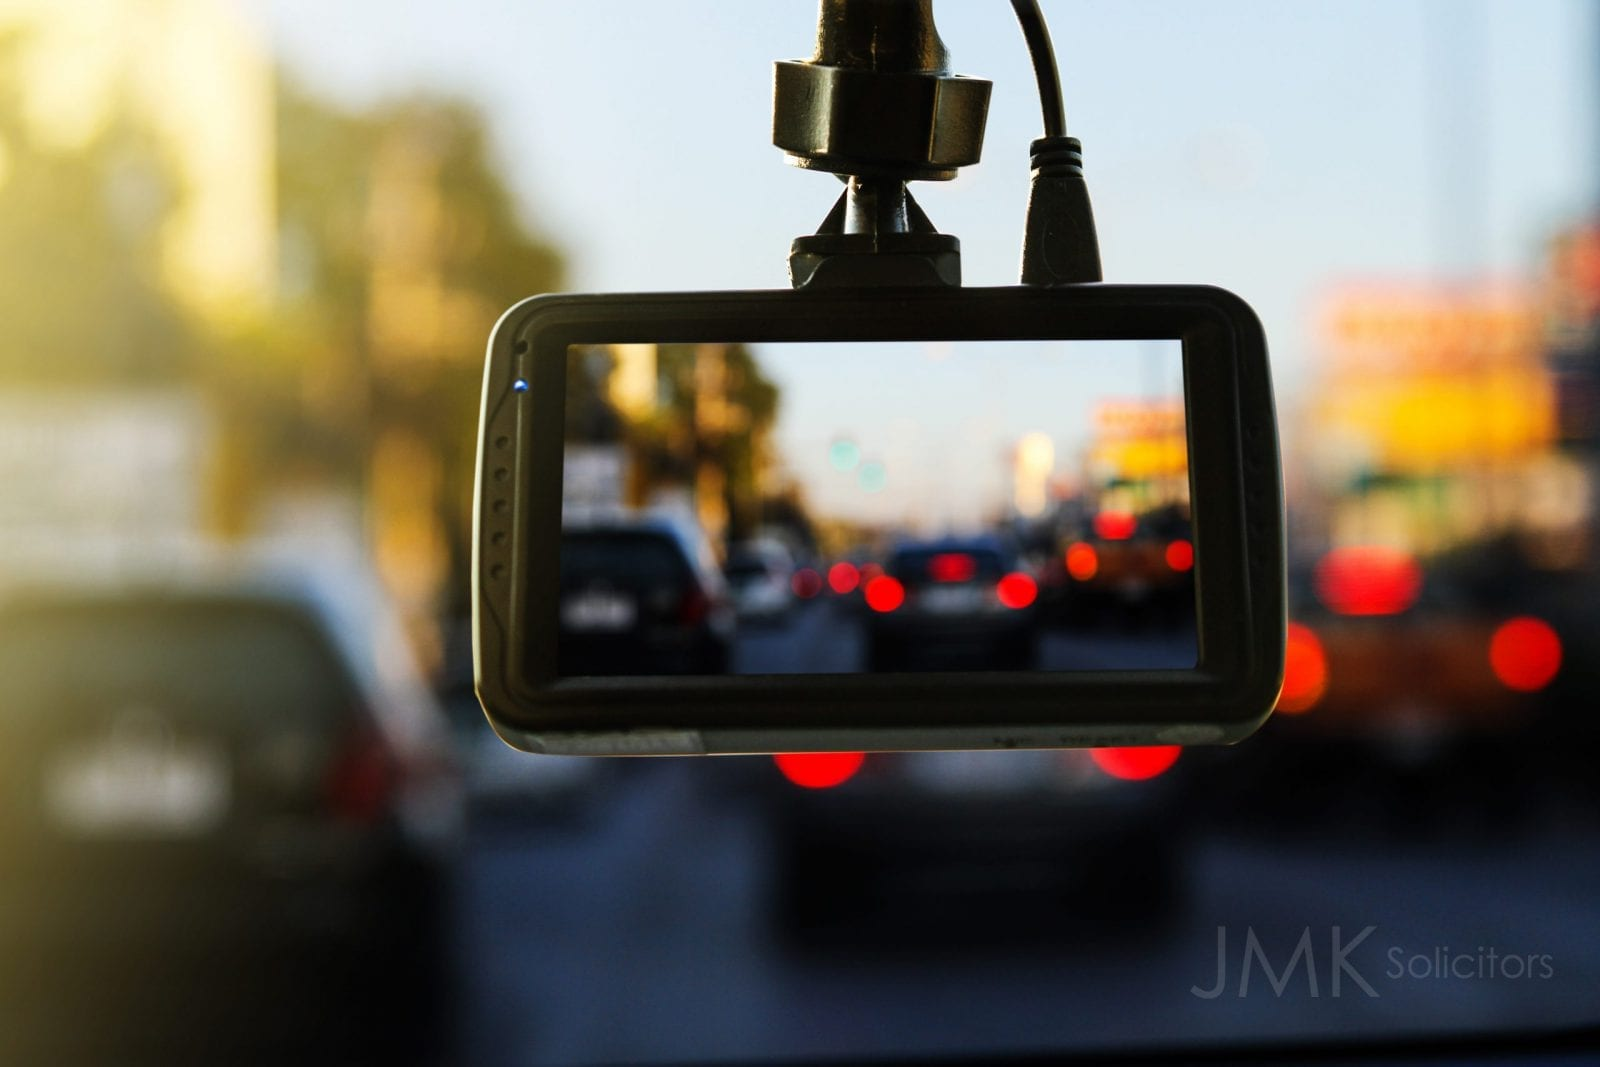 DASH CAMS & THE LAW